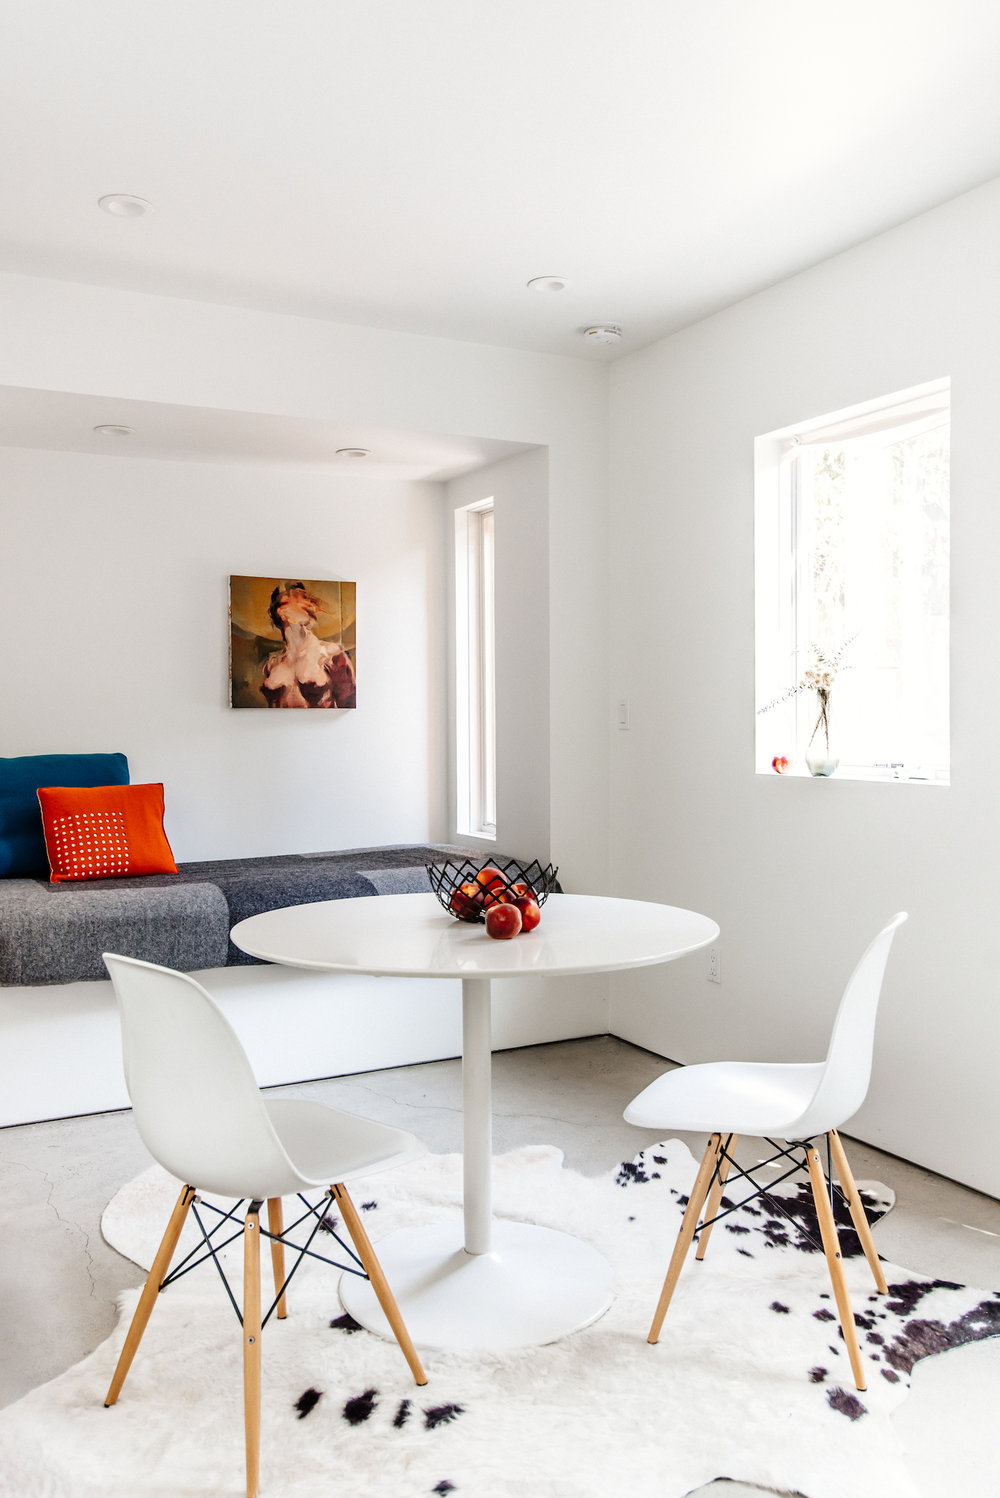 dining area with white table and built in seating area with grey cushion and cowhide rug and stained cement floors.jpg